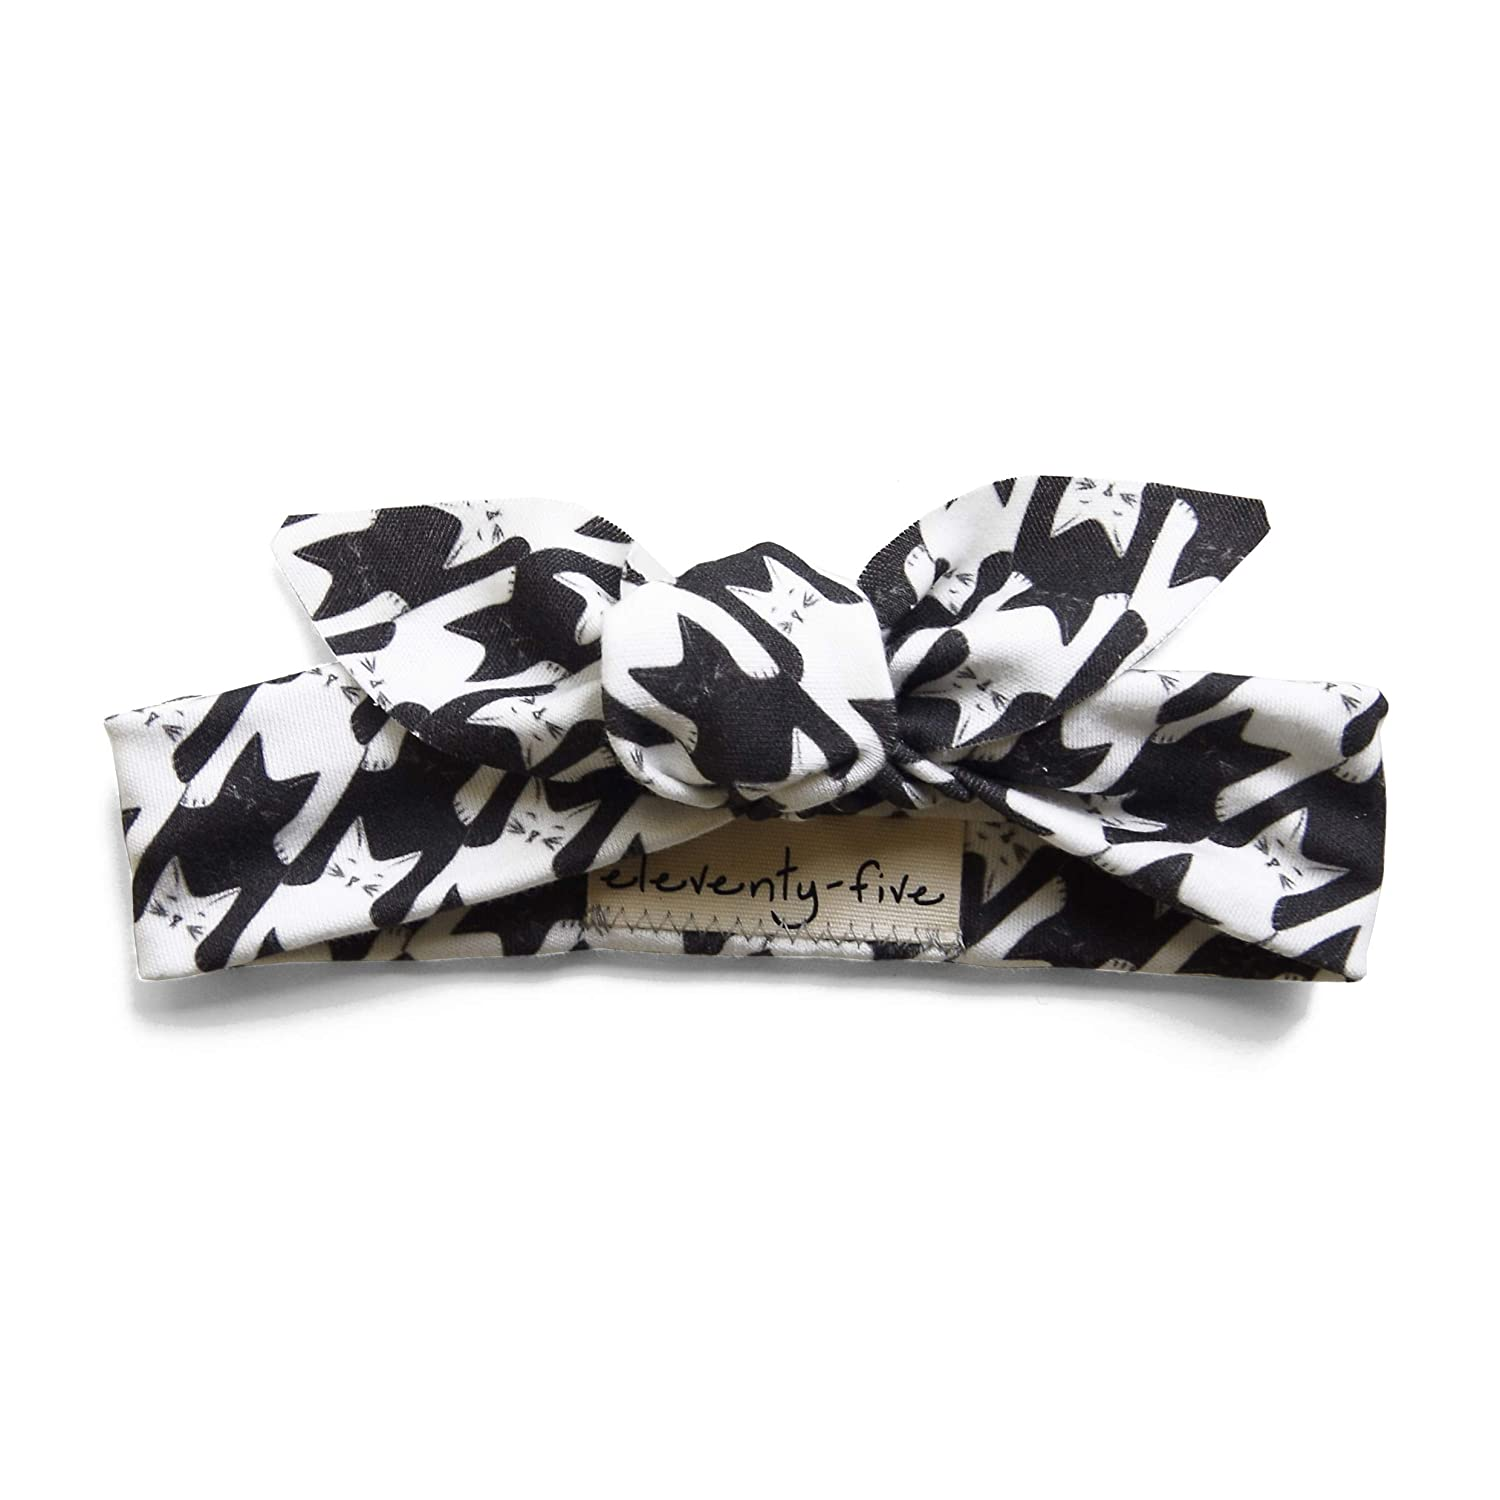 Cats-Tooth (Houndstooth) Organic Babies & Kids Adjustable Knotted Headband in Black and White